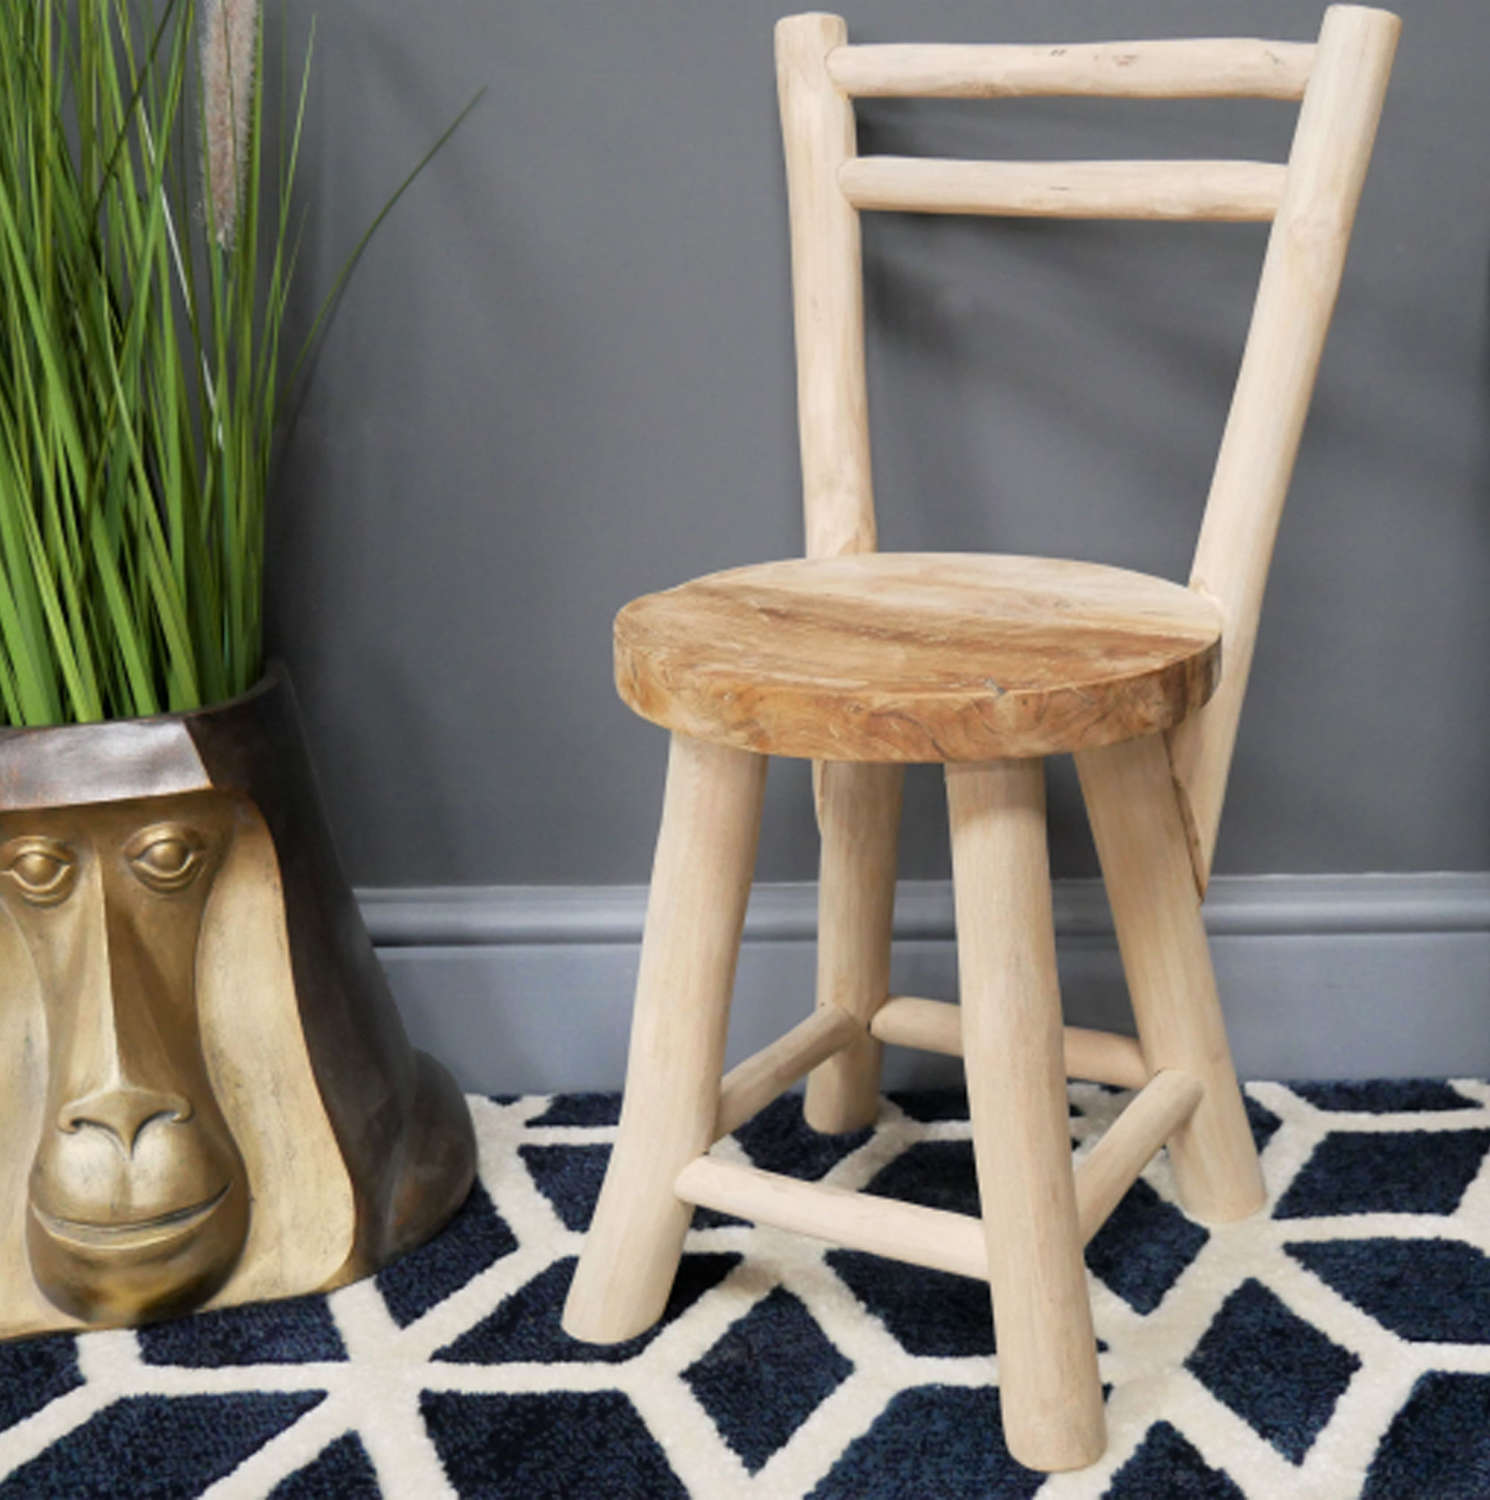 Solid wood mini chair made from Teak